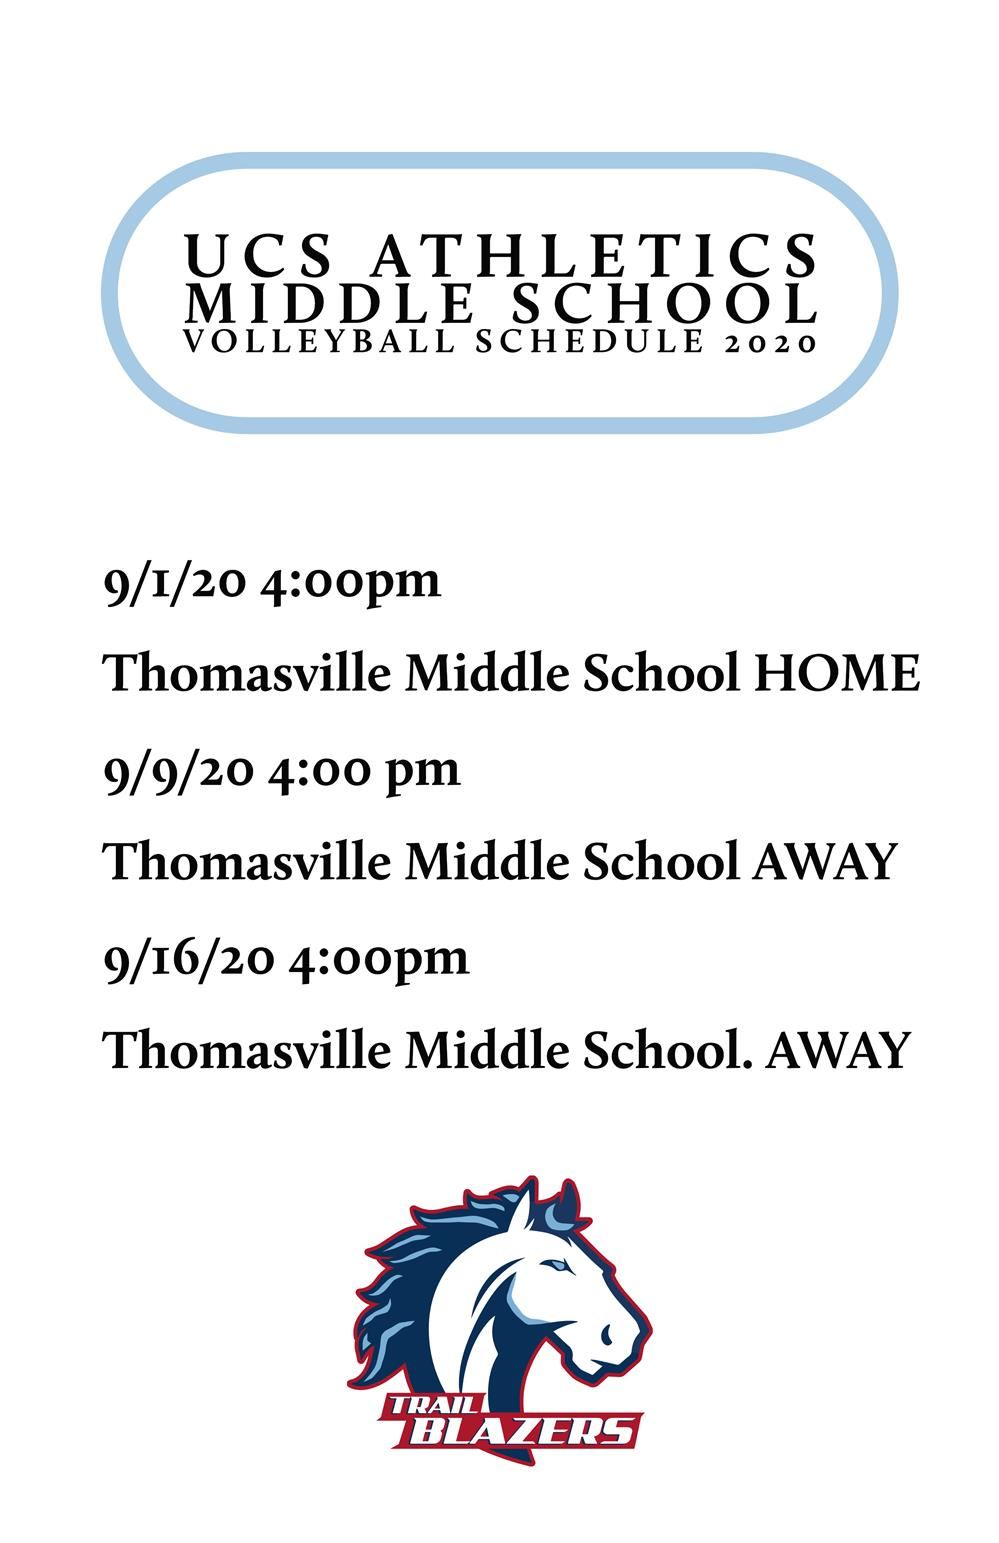 Volley Ball Middle School Schedule